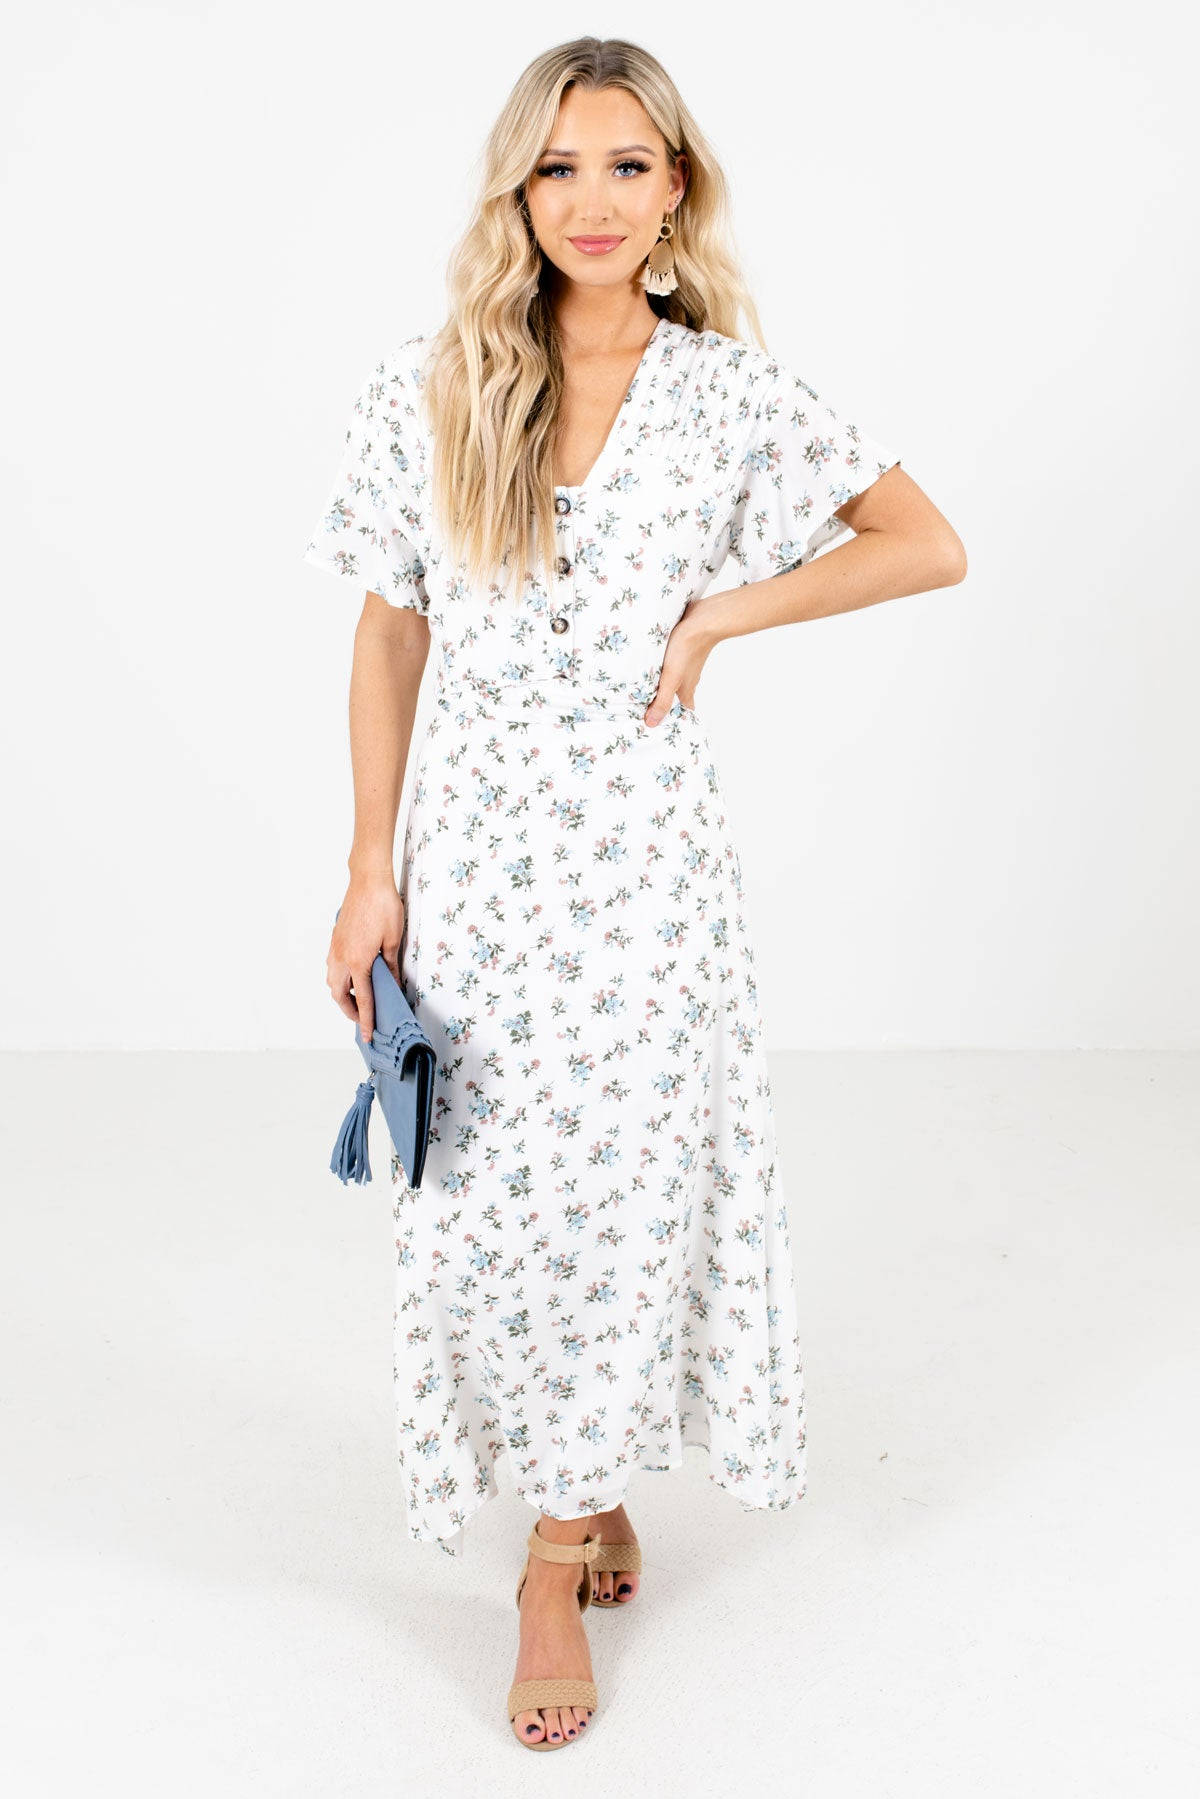 White Multicolored Floral Patterned Boutique Maxi Dresses for Women